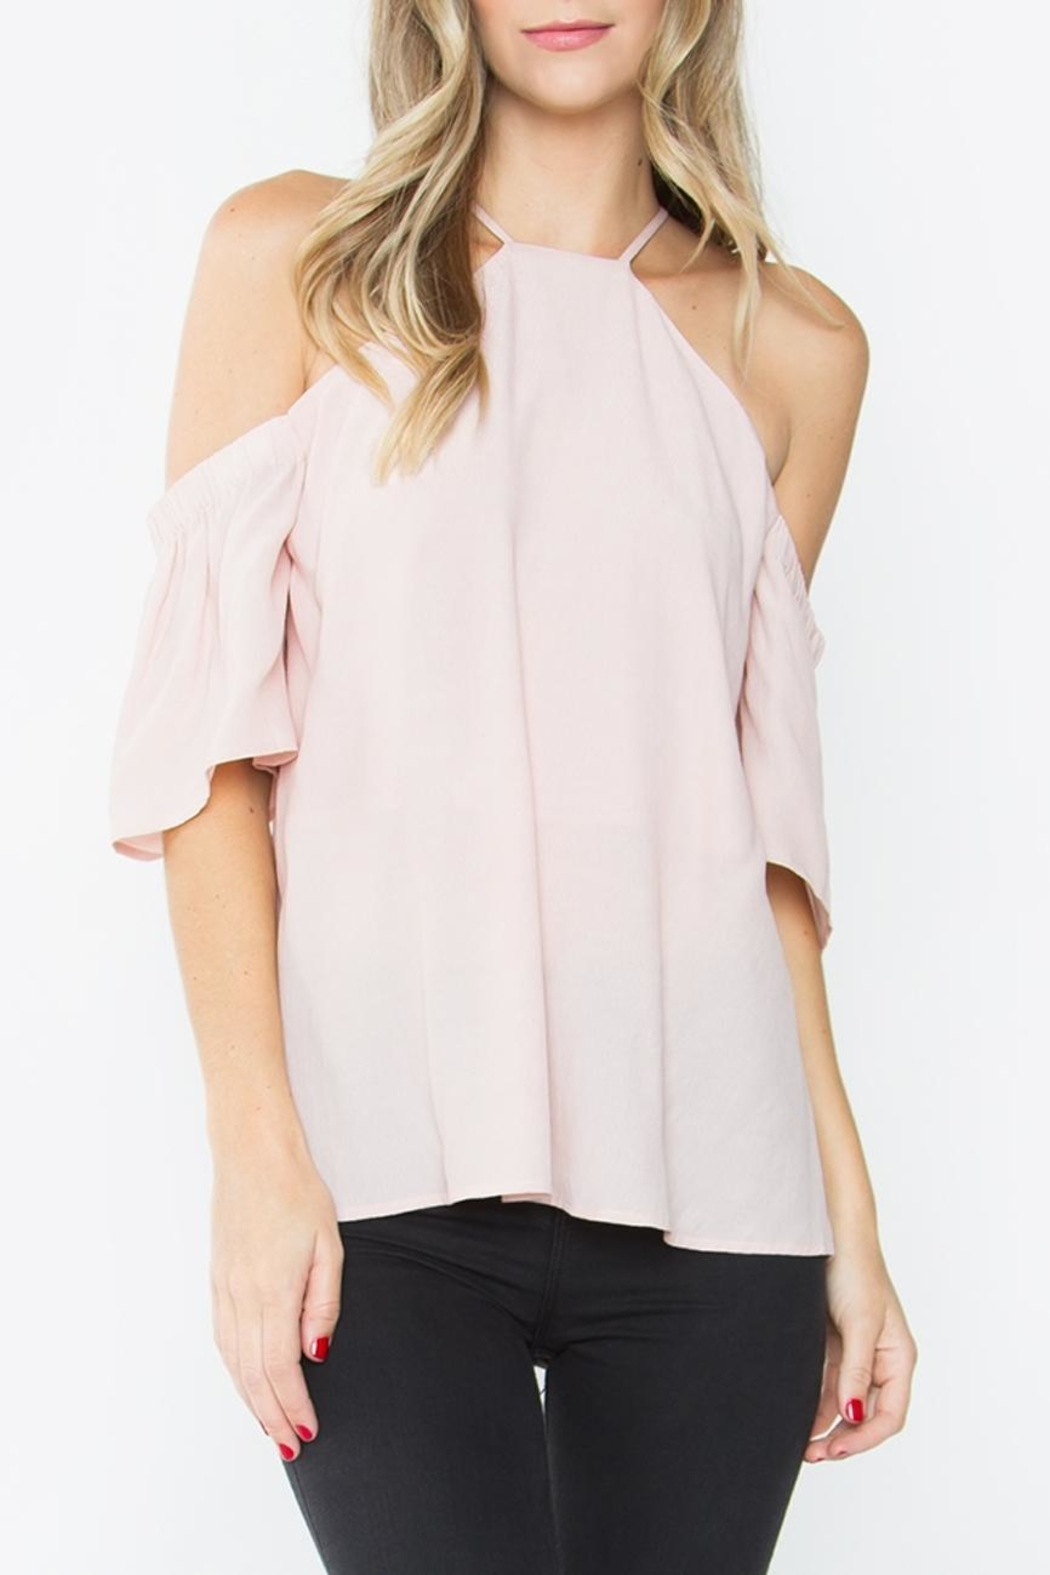 63dbb20e28553 Sugar Lips High-Neck Off-Shoulder Top from Florida by Dressing Room ...